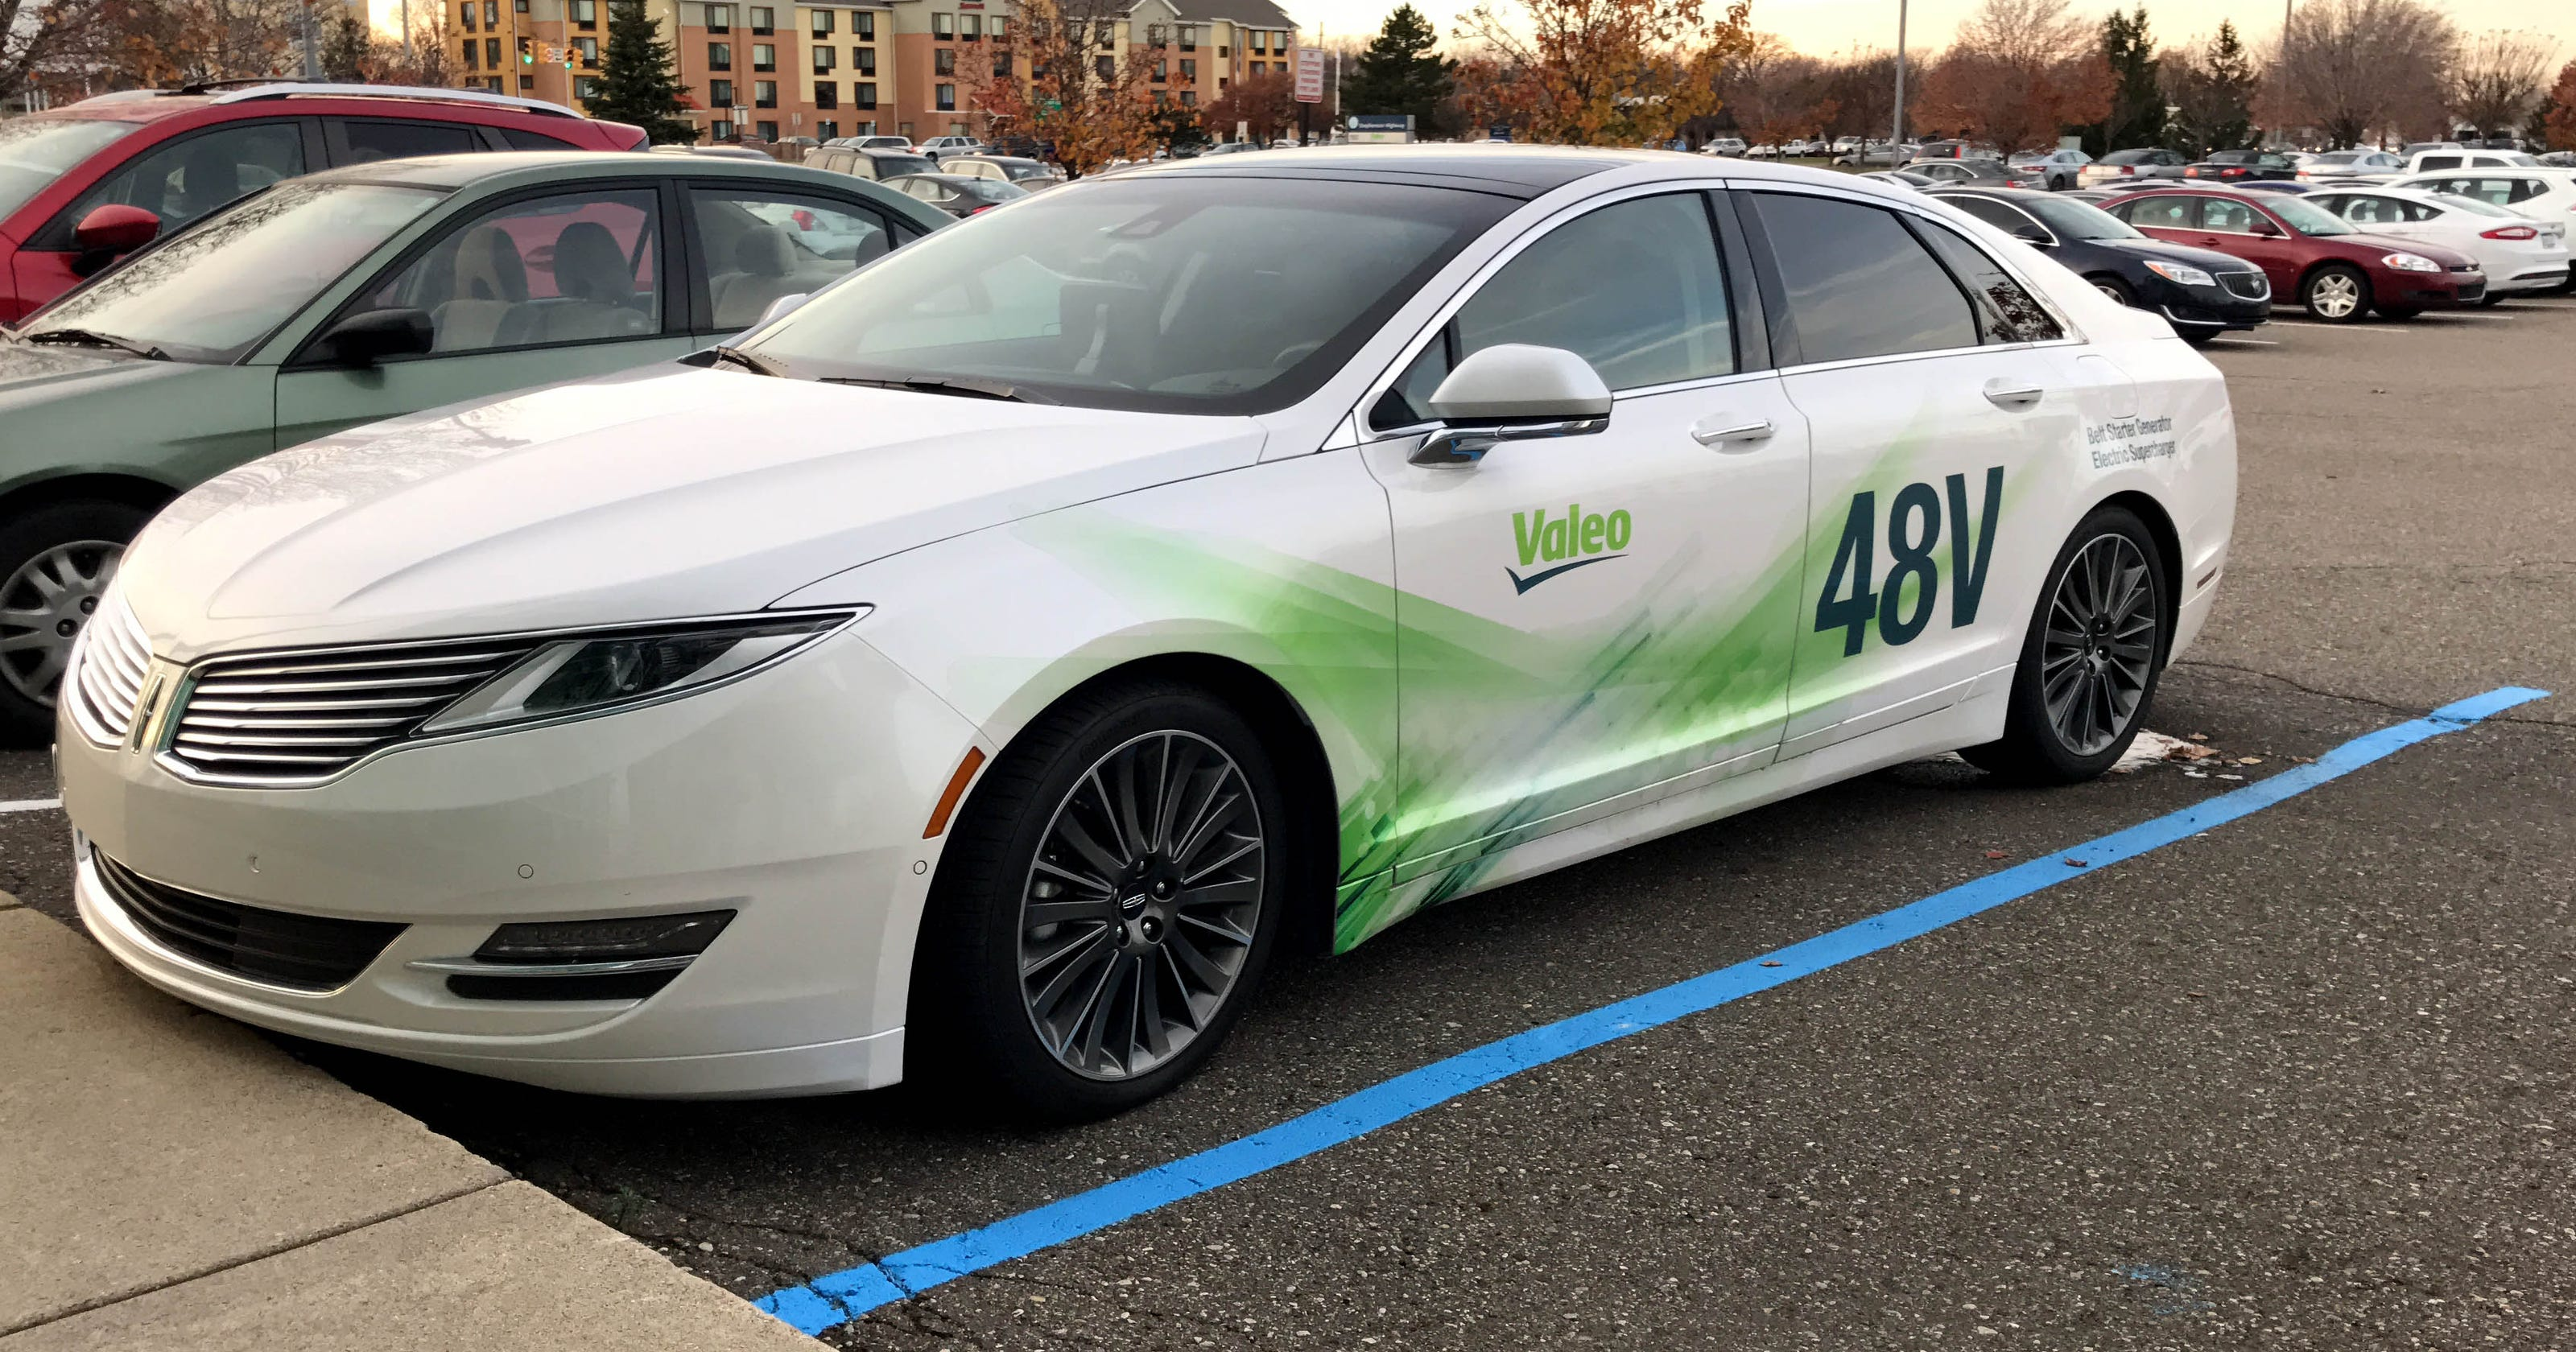 48 volts power up cars for fuel economy, new features